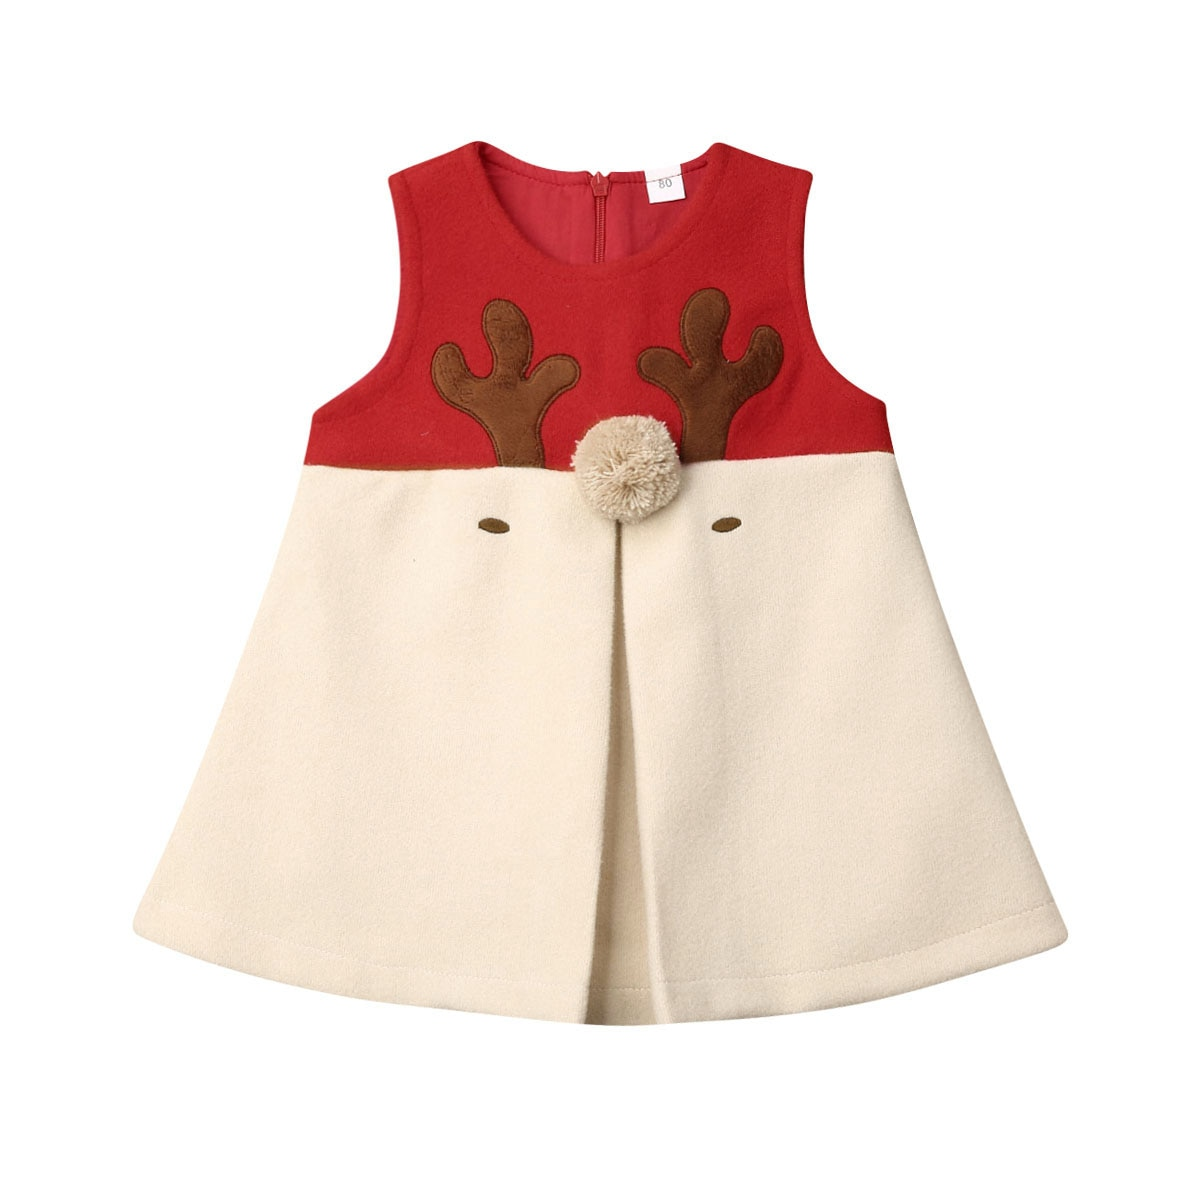 Autumn Winter Newborn Toddlers Baby Girls Kids Hairy Christmas Xmas Vest Antlers Tops Lovely Clothes Outfits